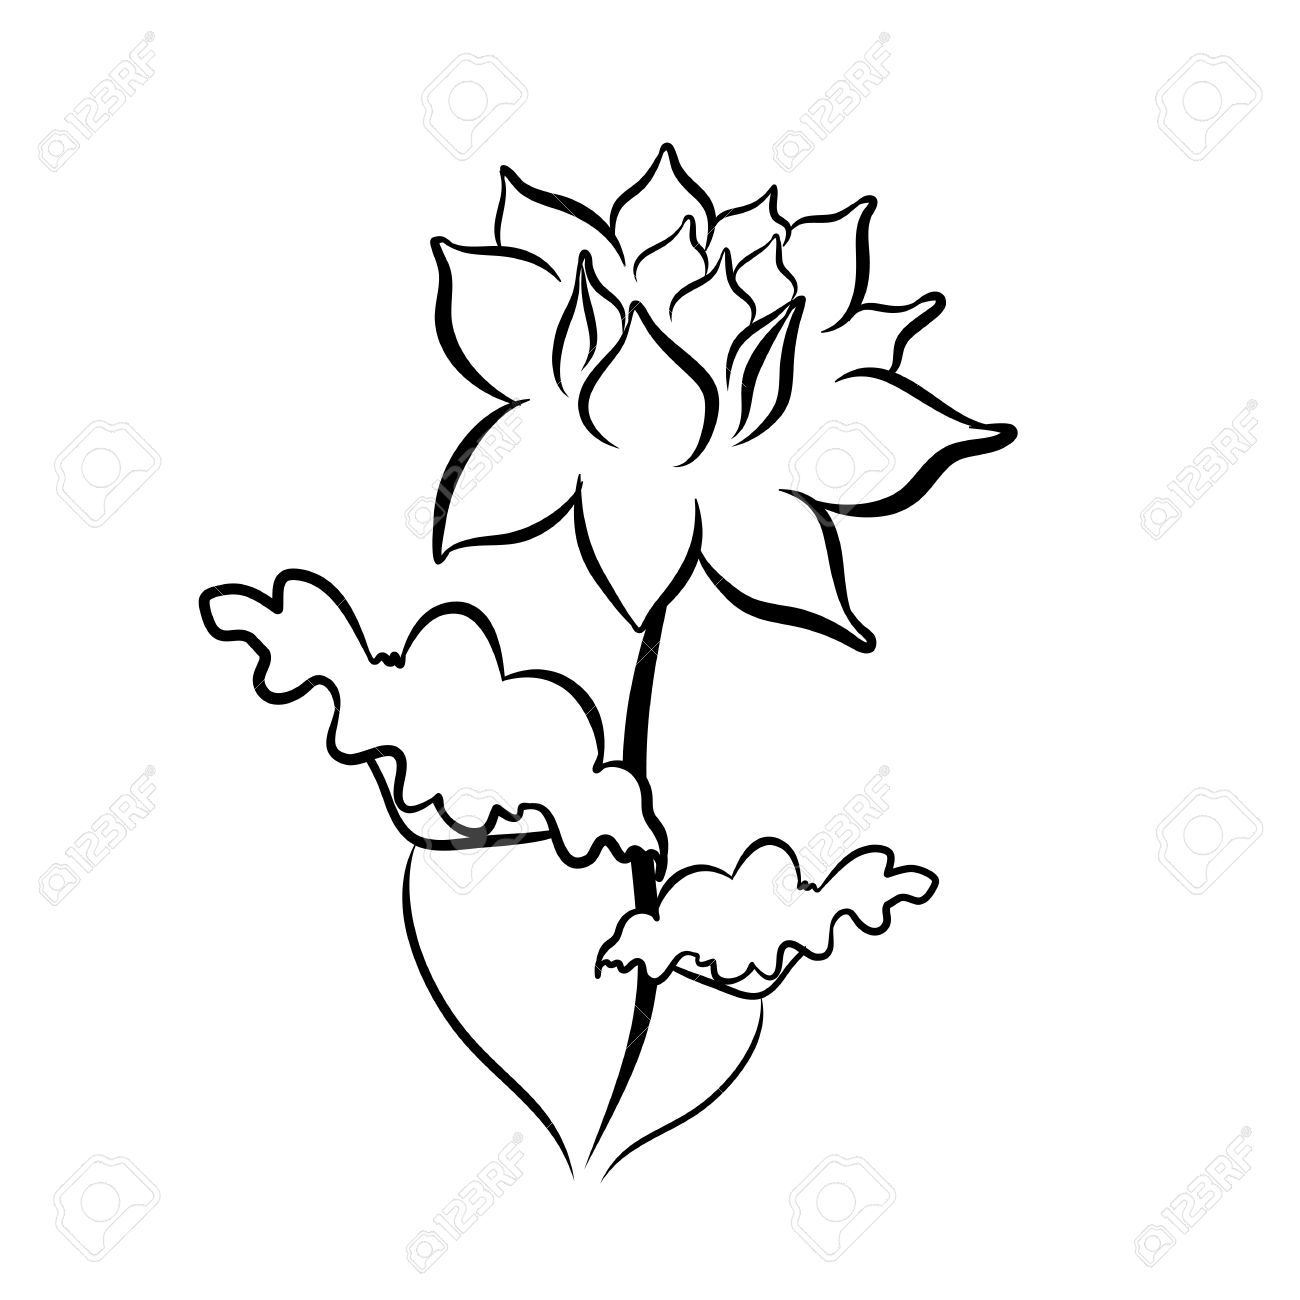 Sketch Line Drawing Of Lotus Flower Isolated Illustration On